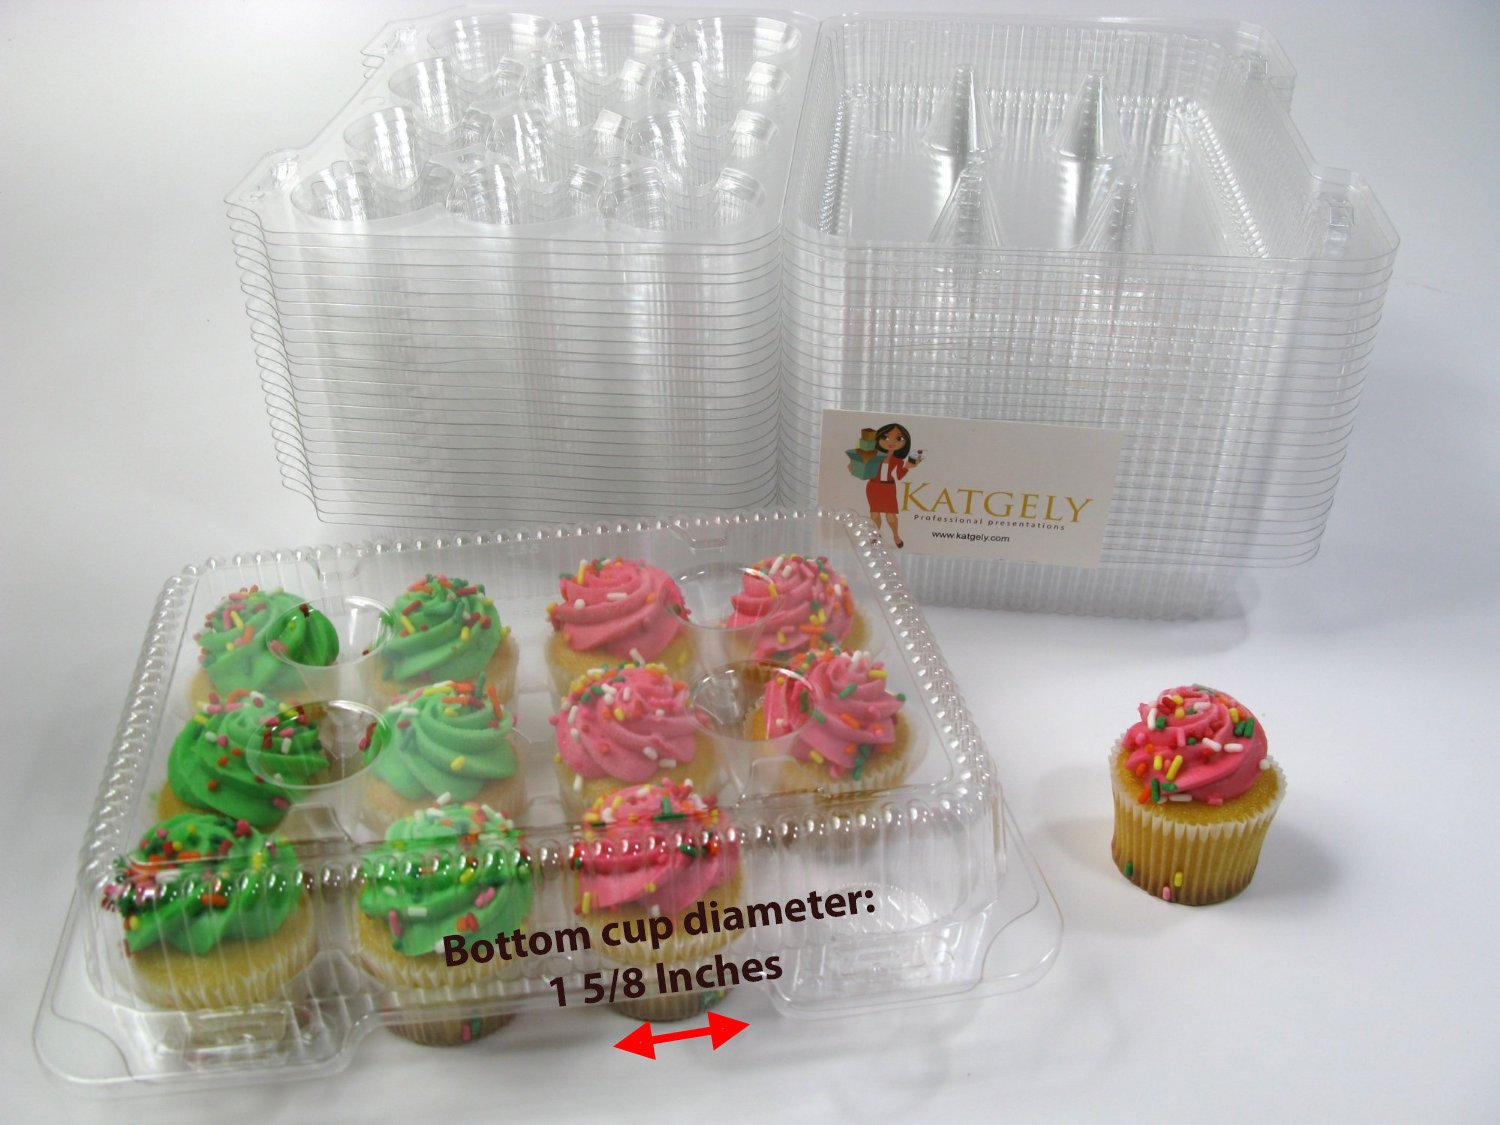 Katgely Mini Cupcake Container for Dozen Mini Cupcakes Pack of 50